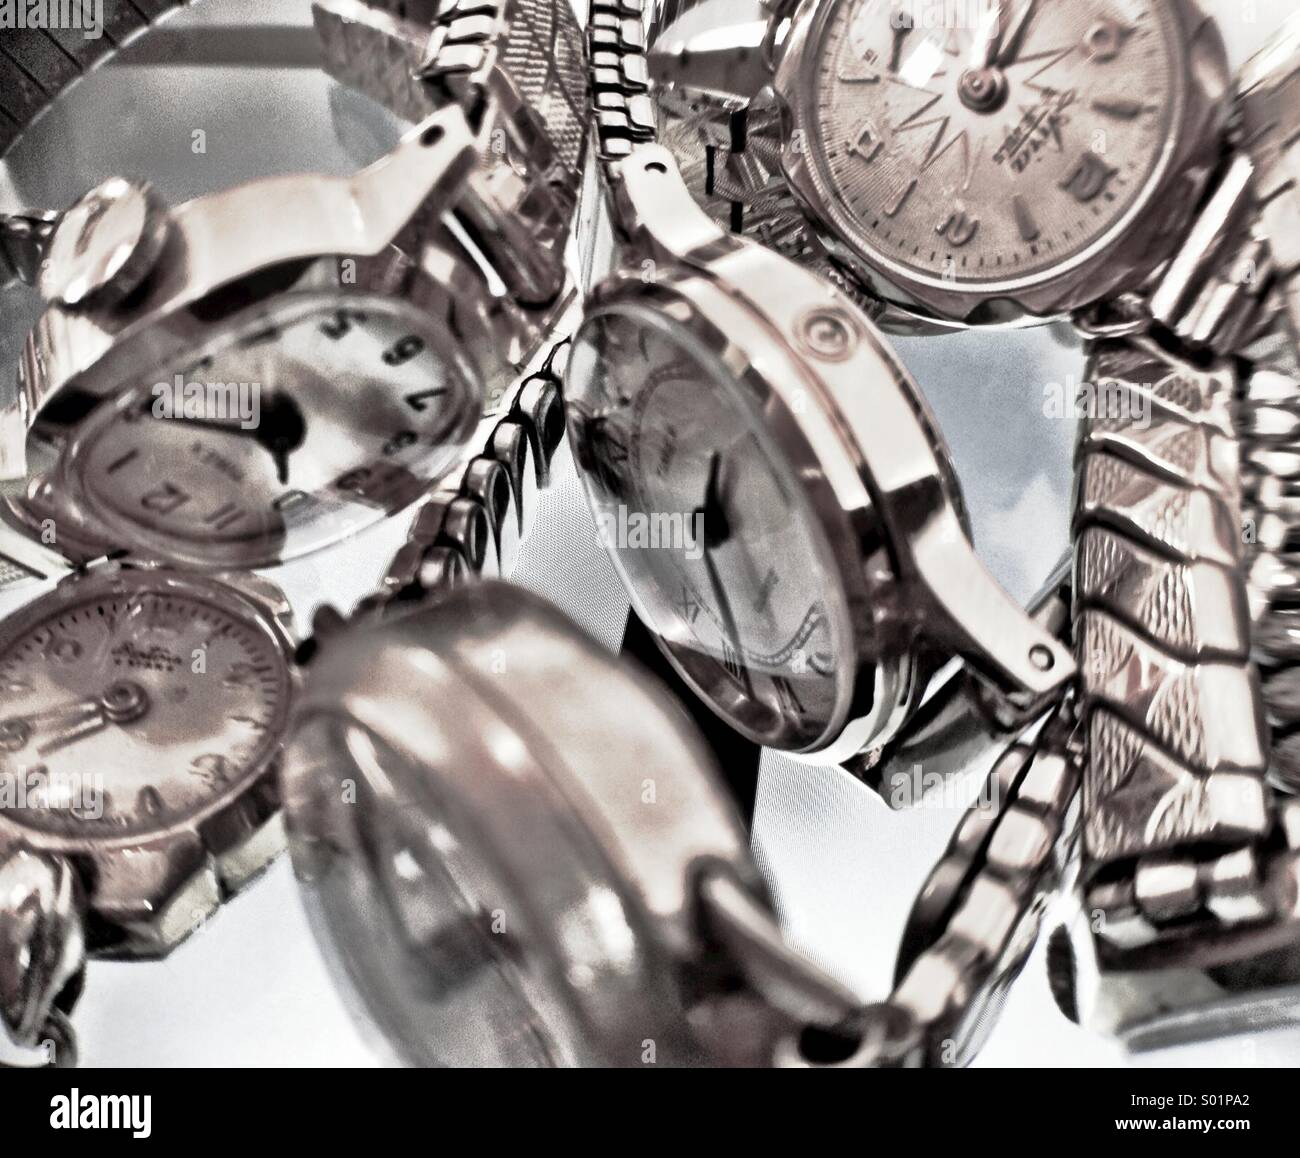 Watches - Stock Image